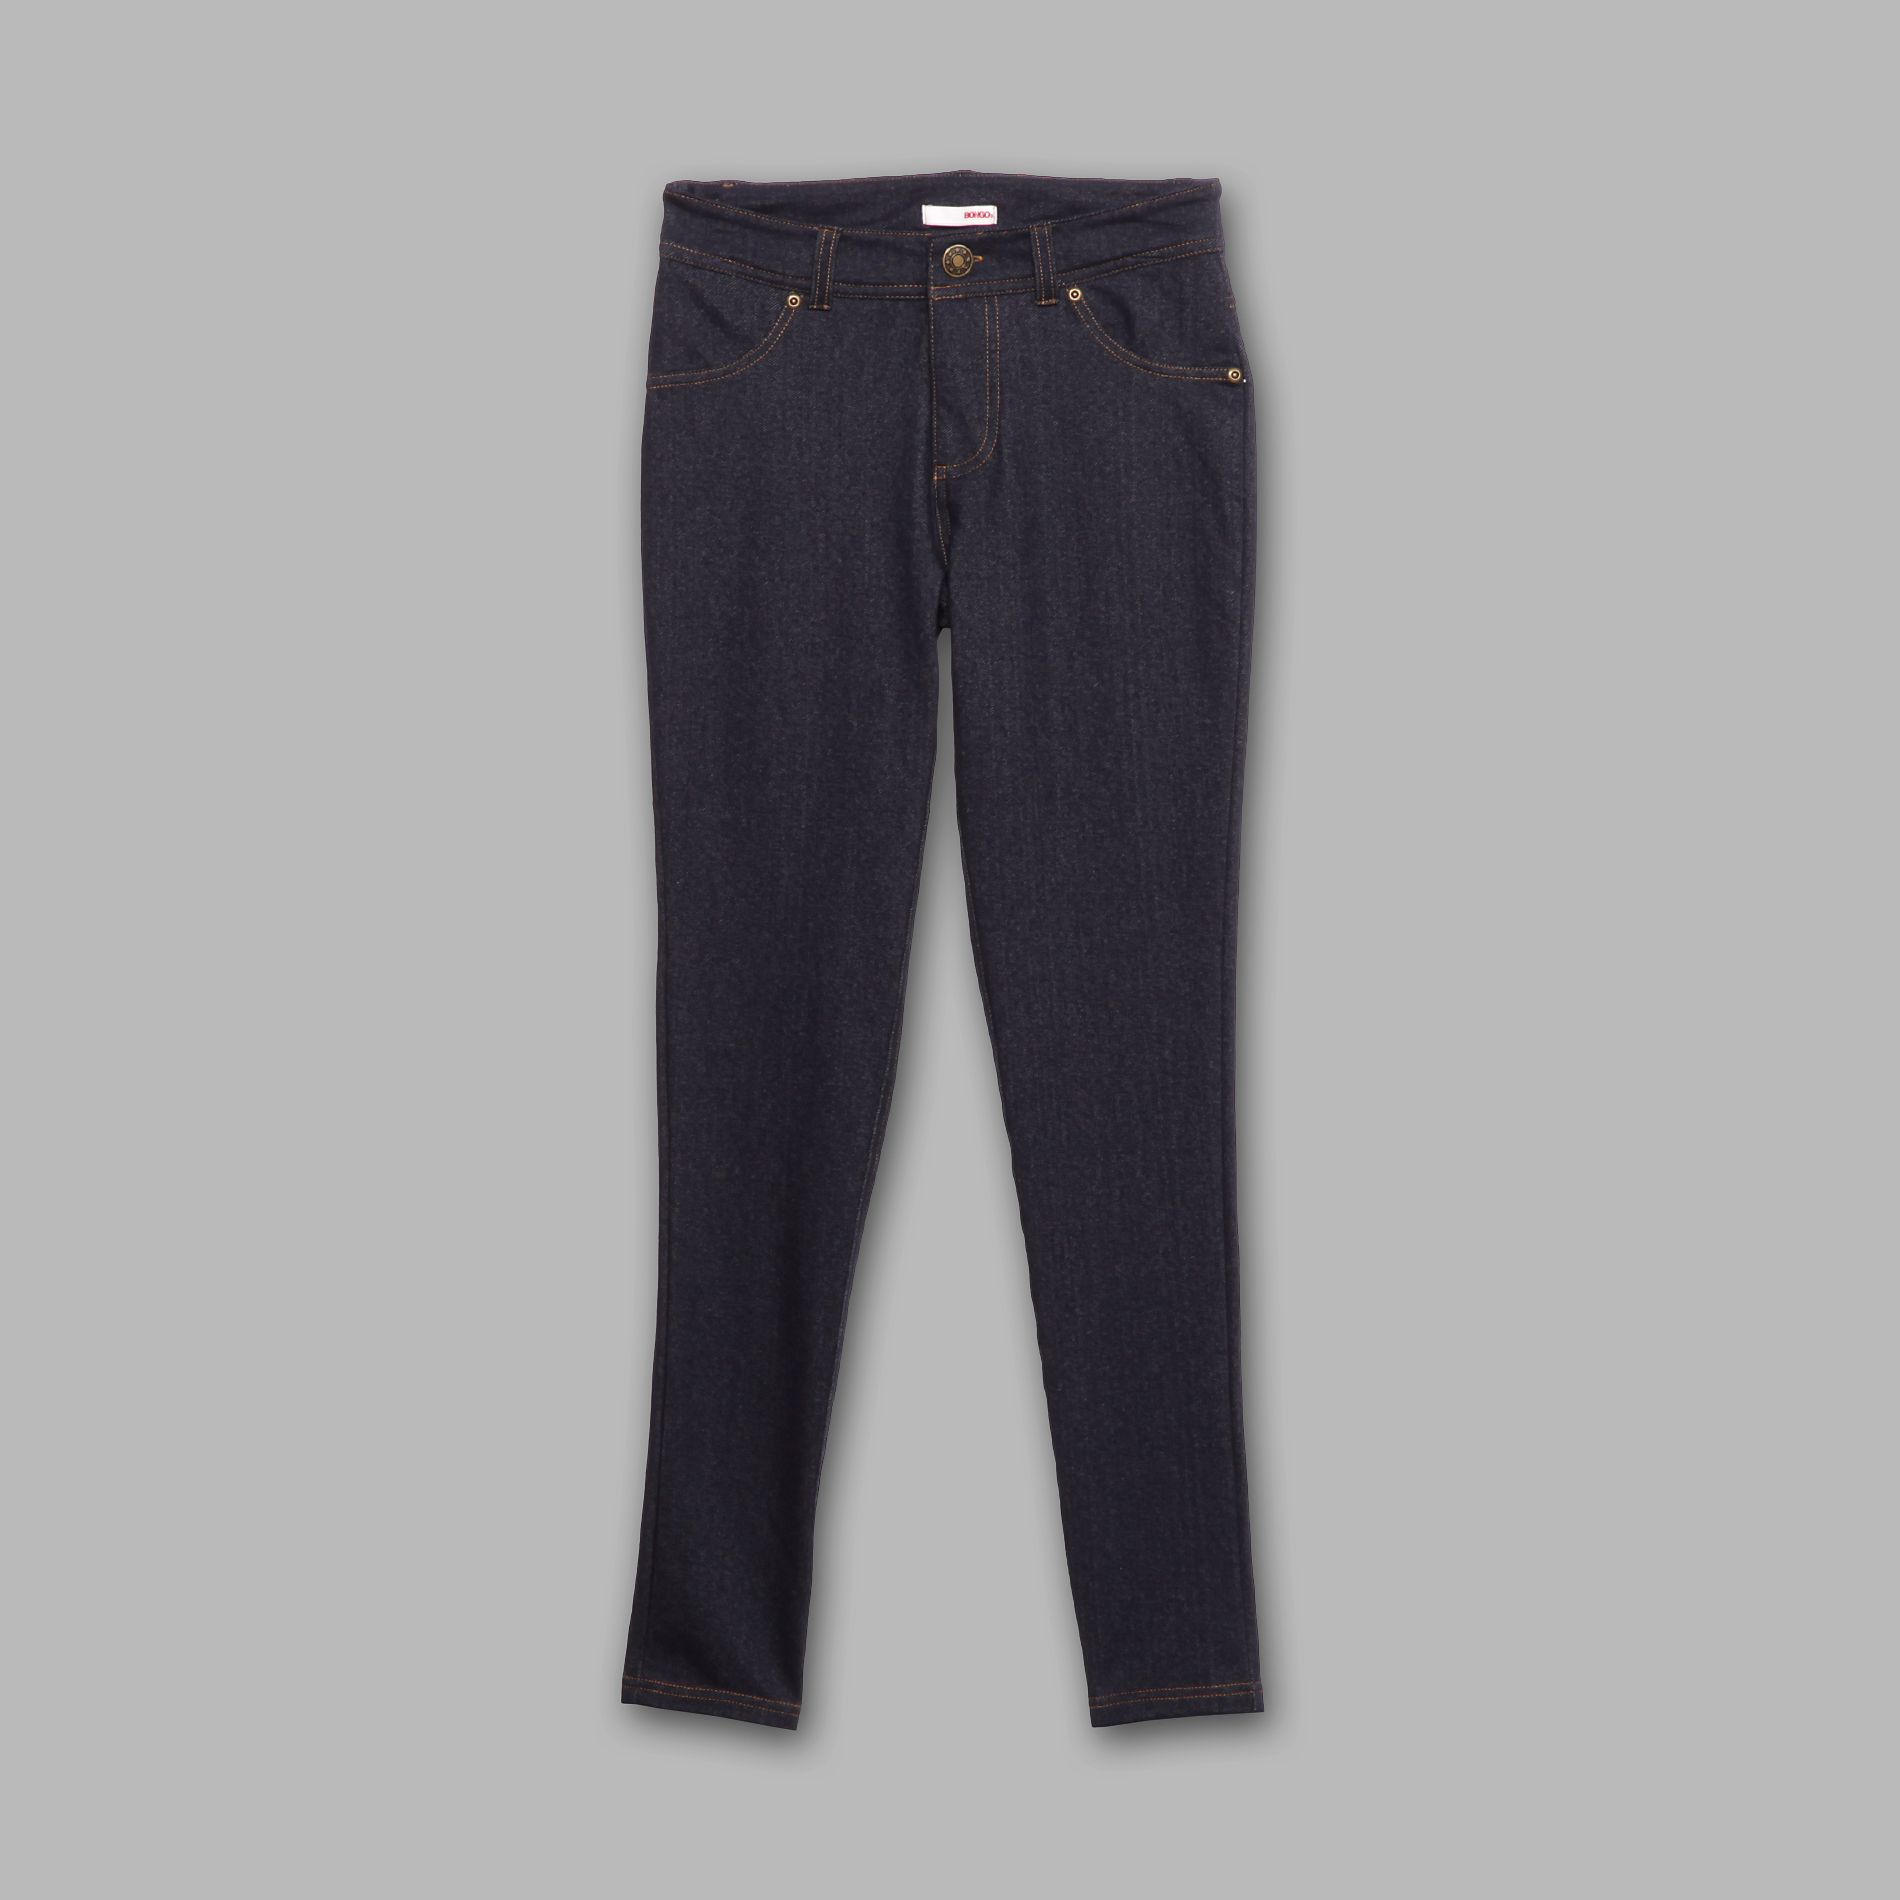 Bongo Junior's Jeans Denim Skinny Leg at Sears.com